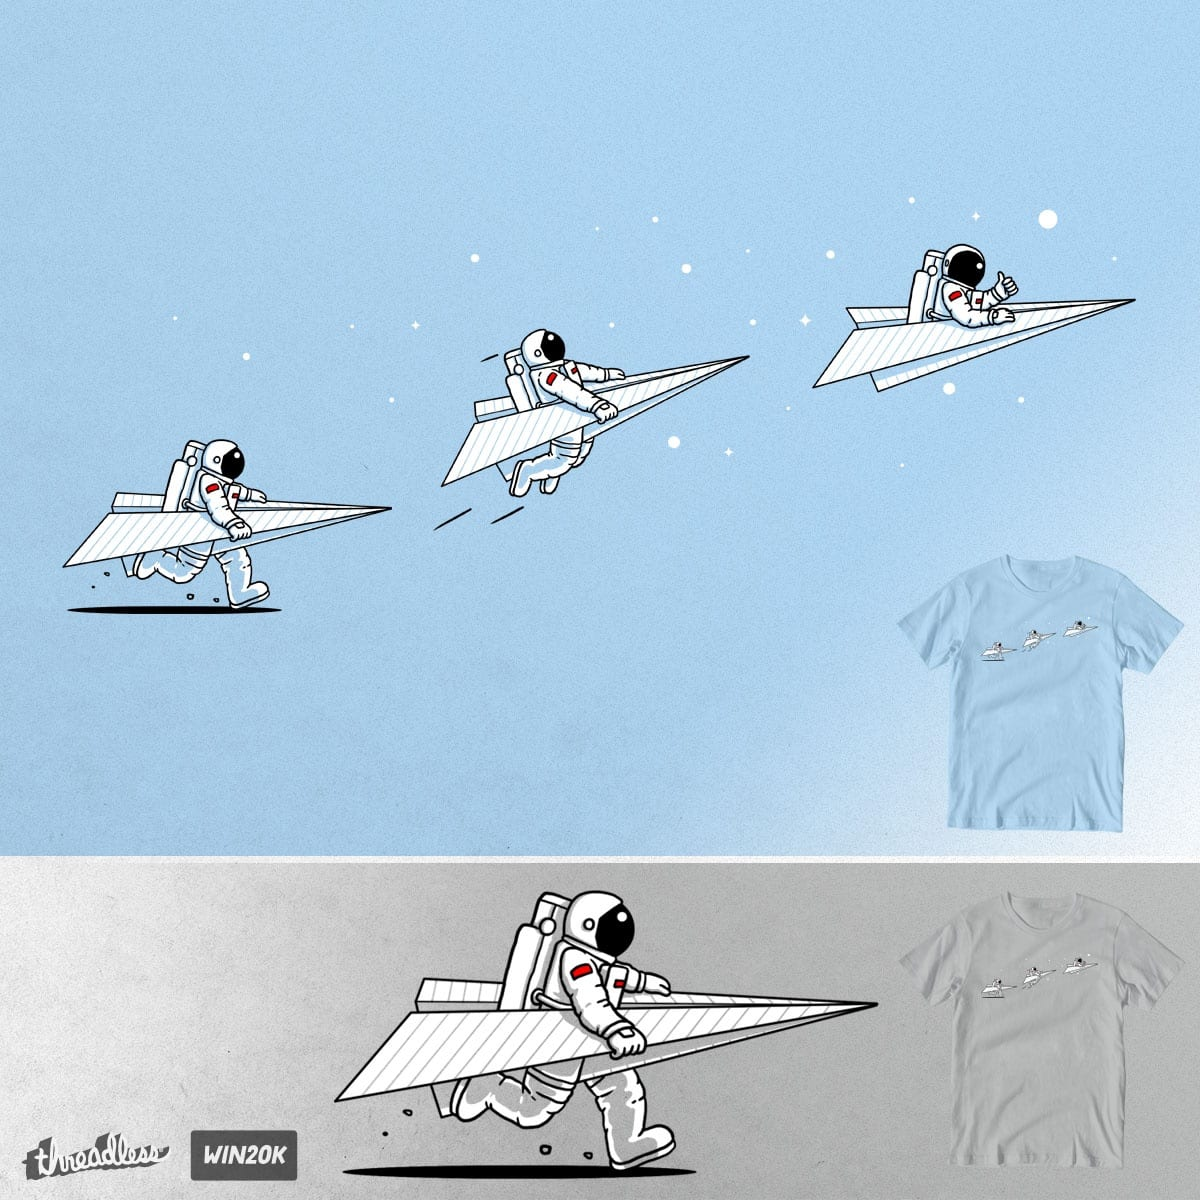 Take Off by uptme on Threadless